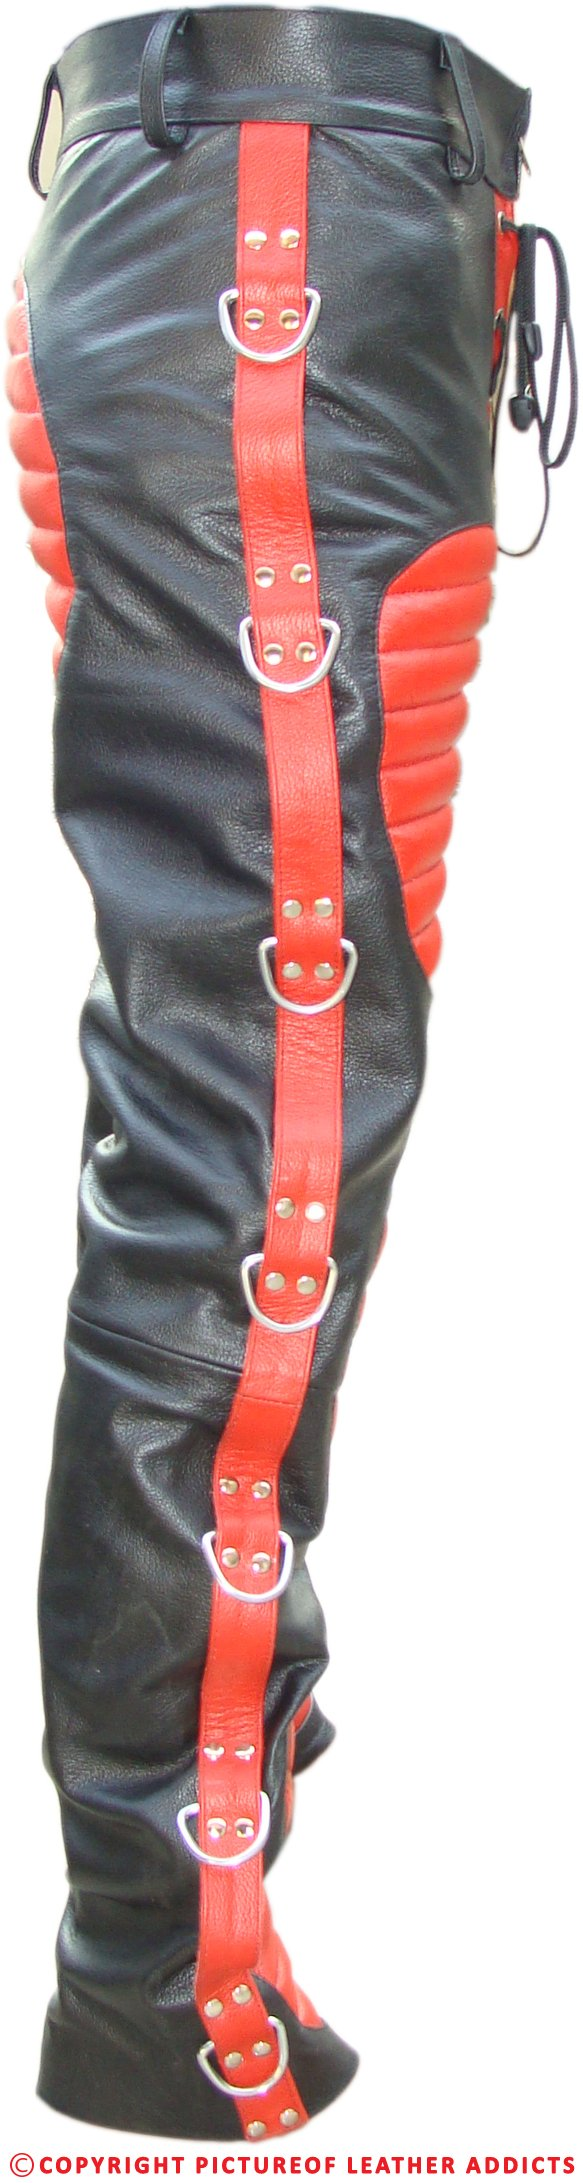 new-sexy-men-real-leather-heavy-duty-bondage-pant